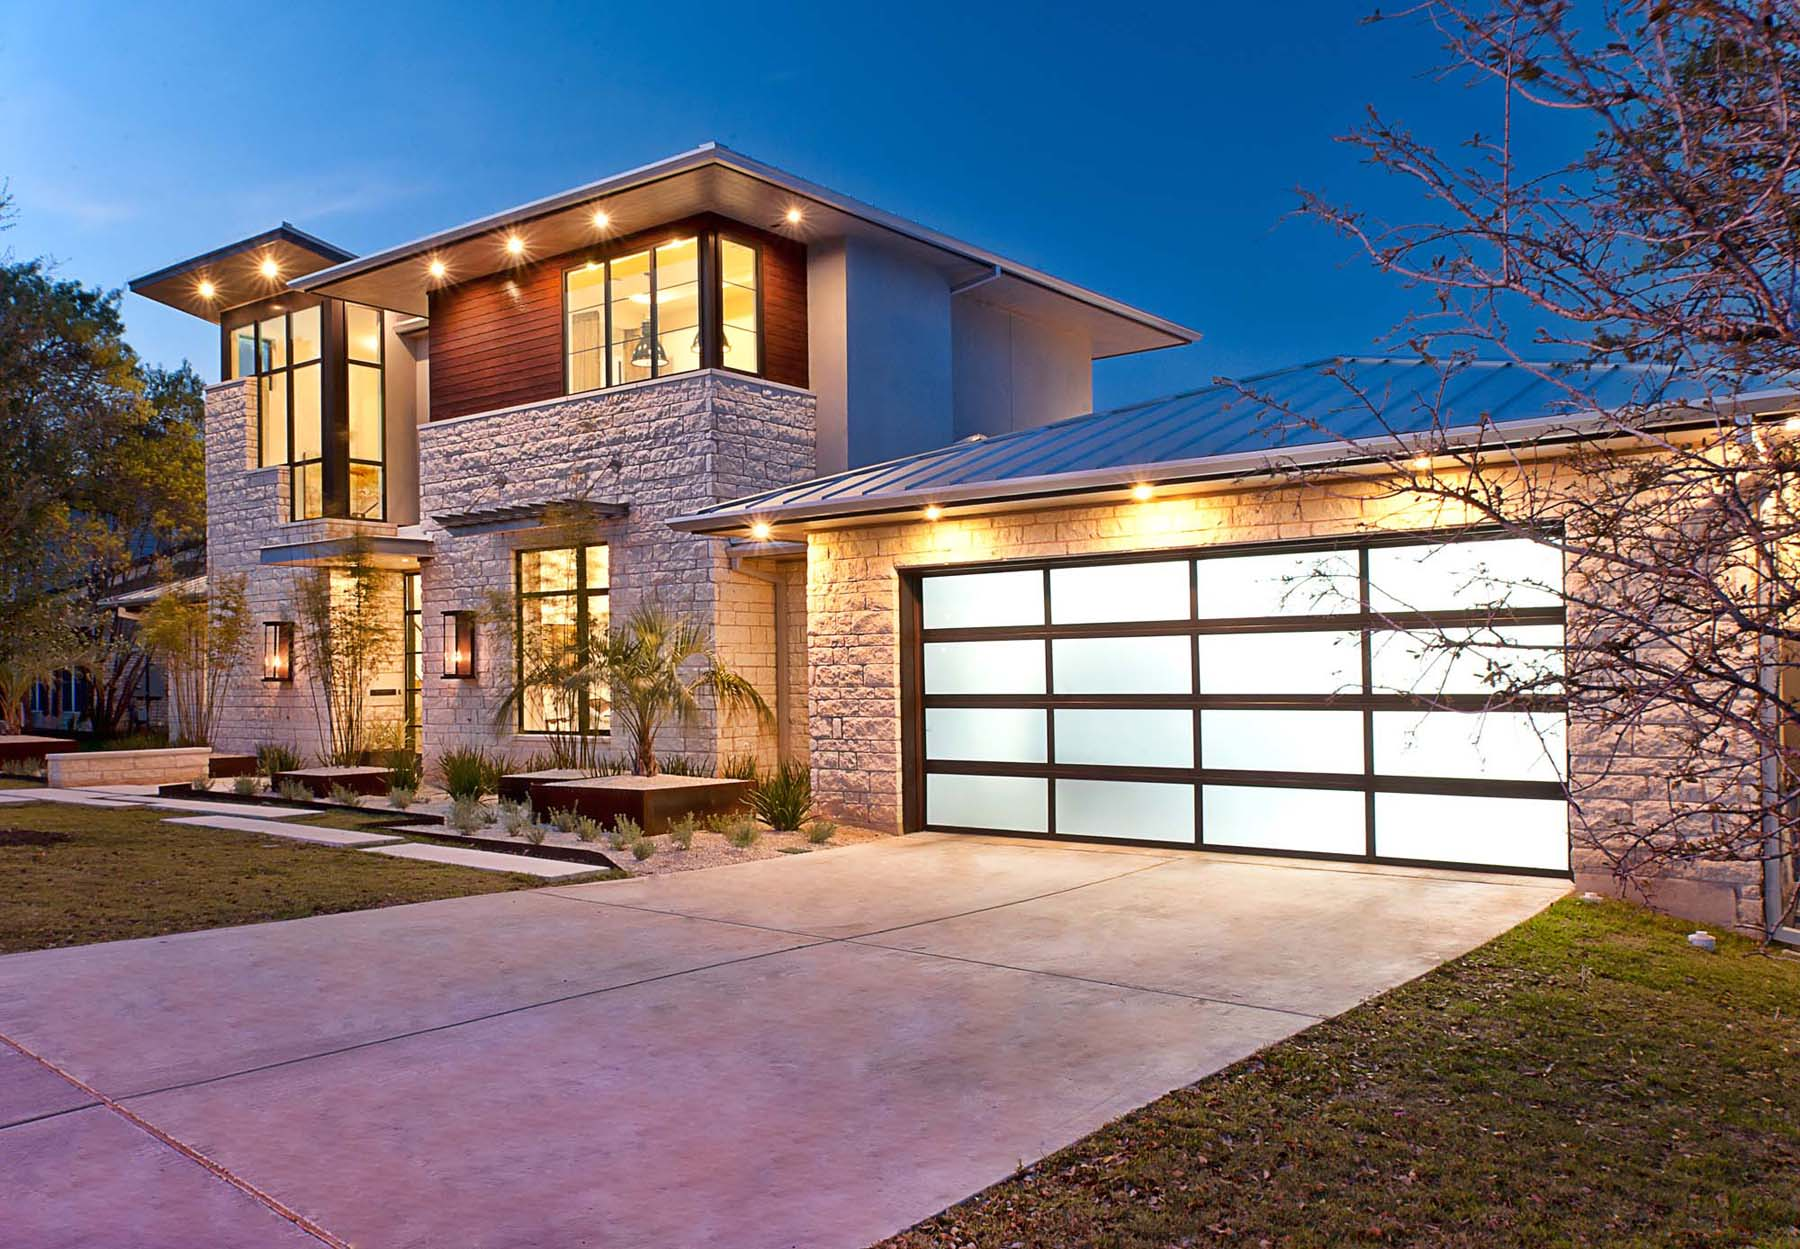 Austin texas contemporary house design stylish outdoor entertaining space